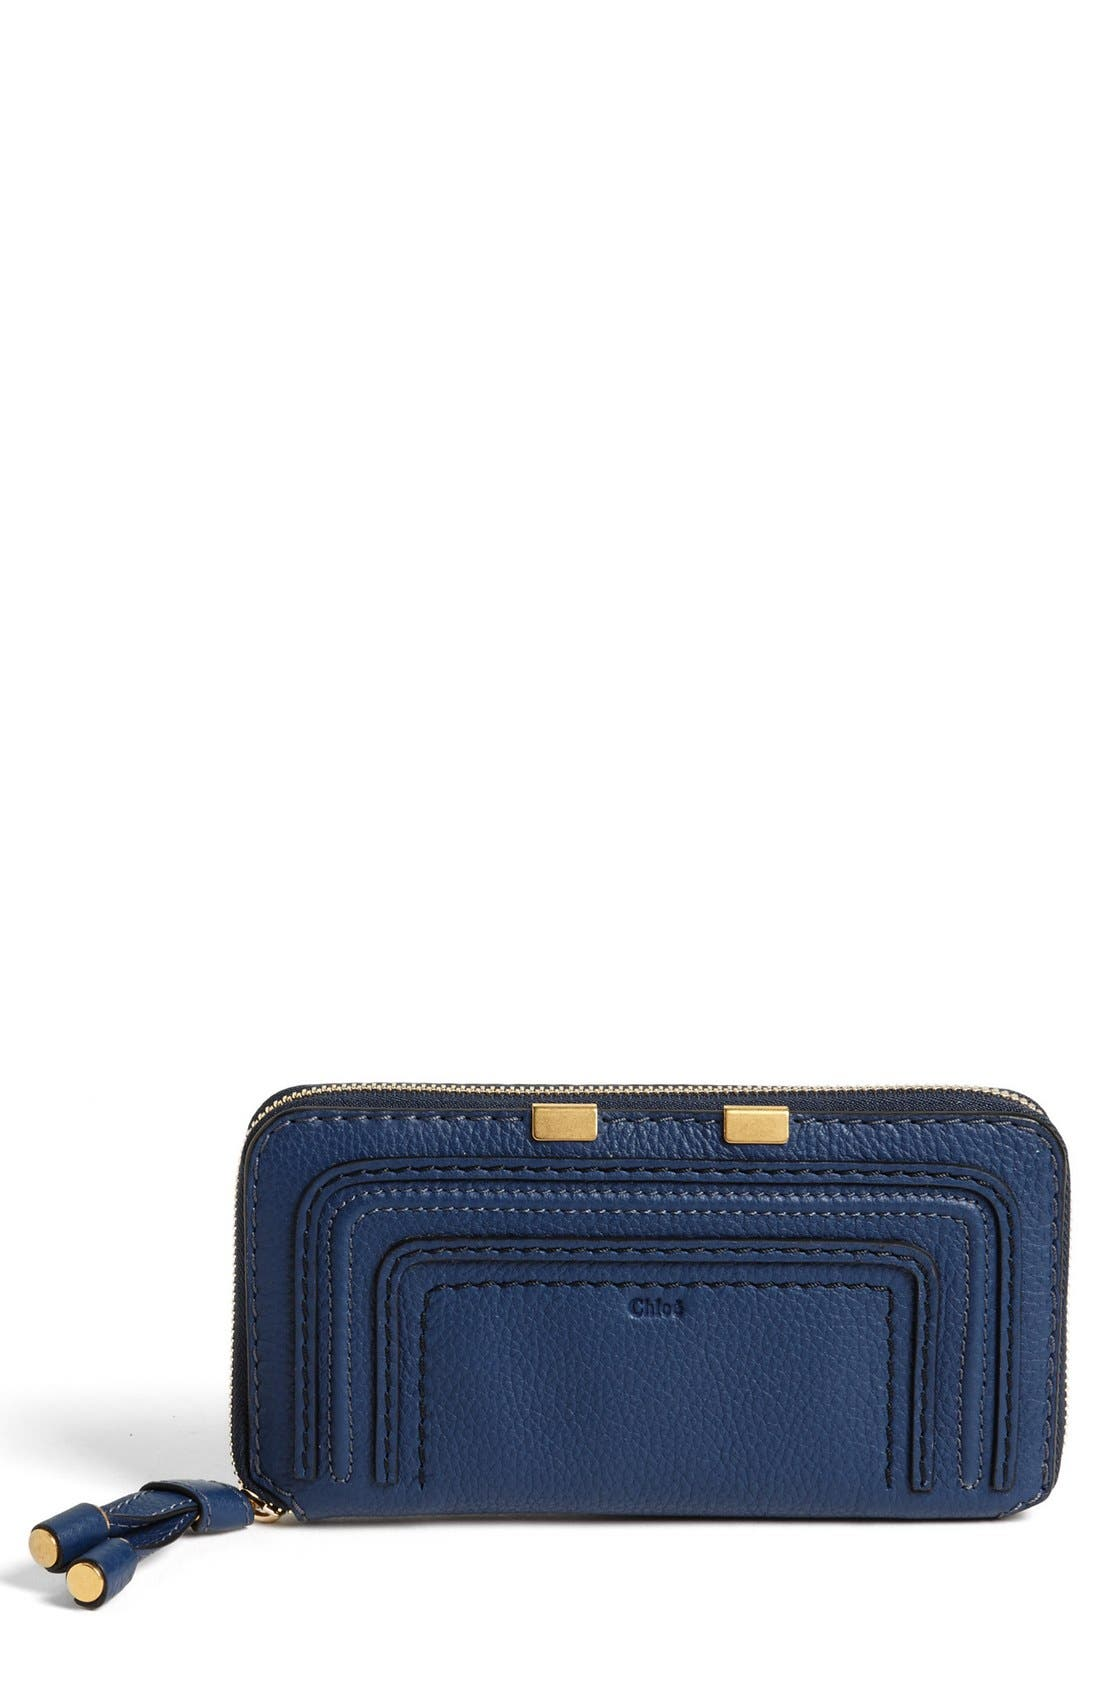 Alternate Image 1 Selected - Chloé 'Marcie - Long' Zip Around Wallet